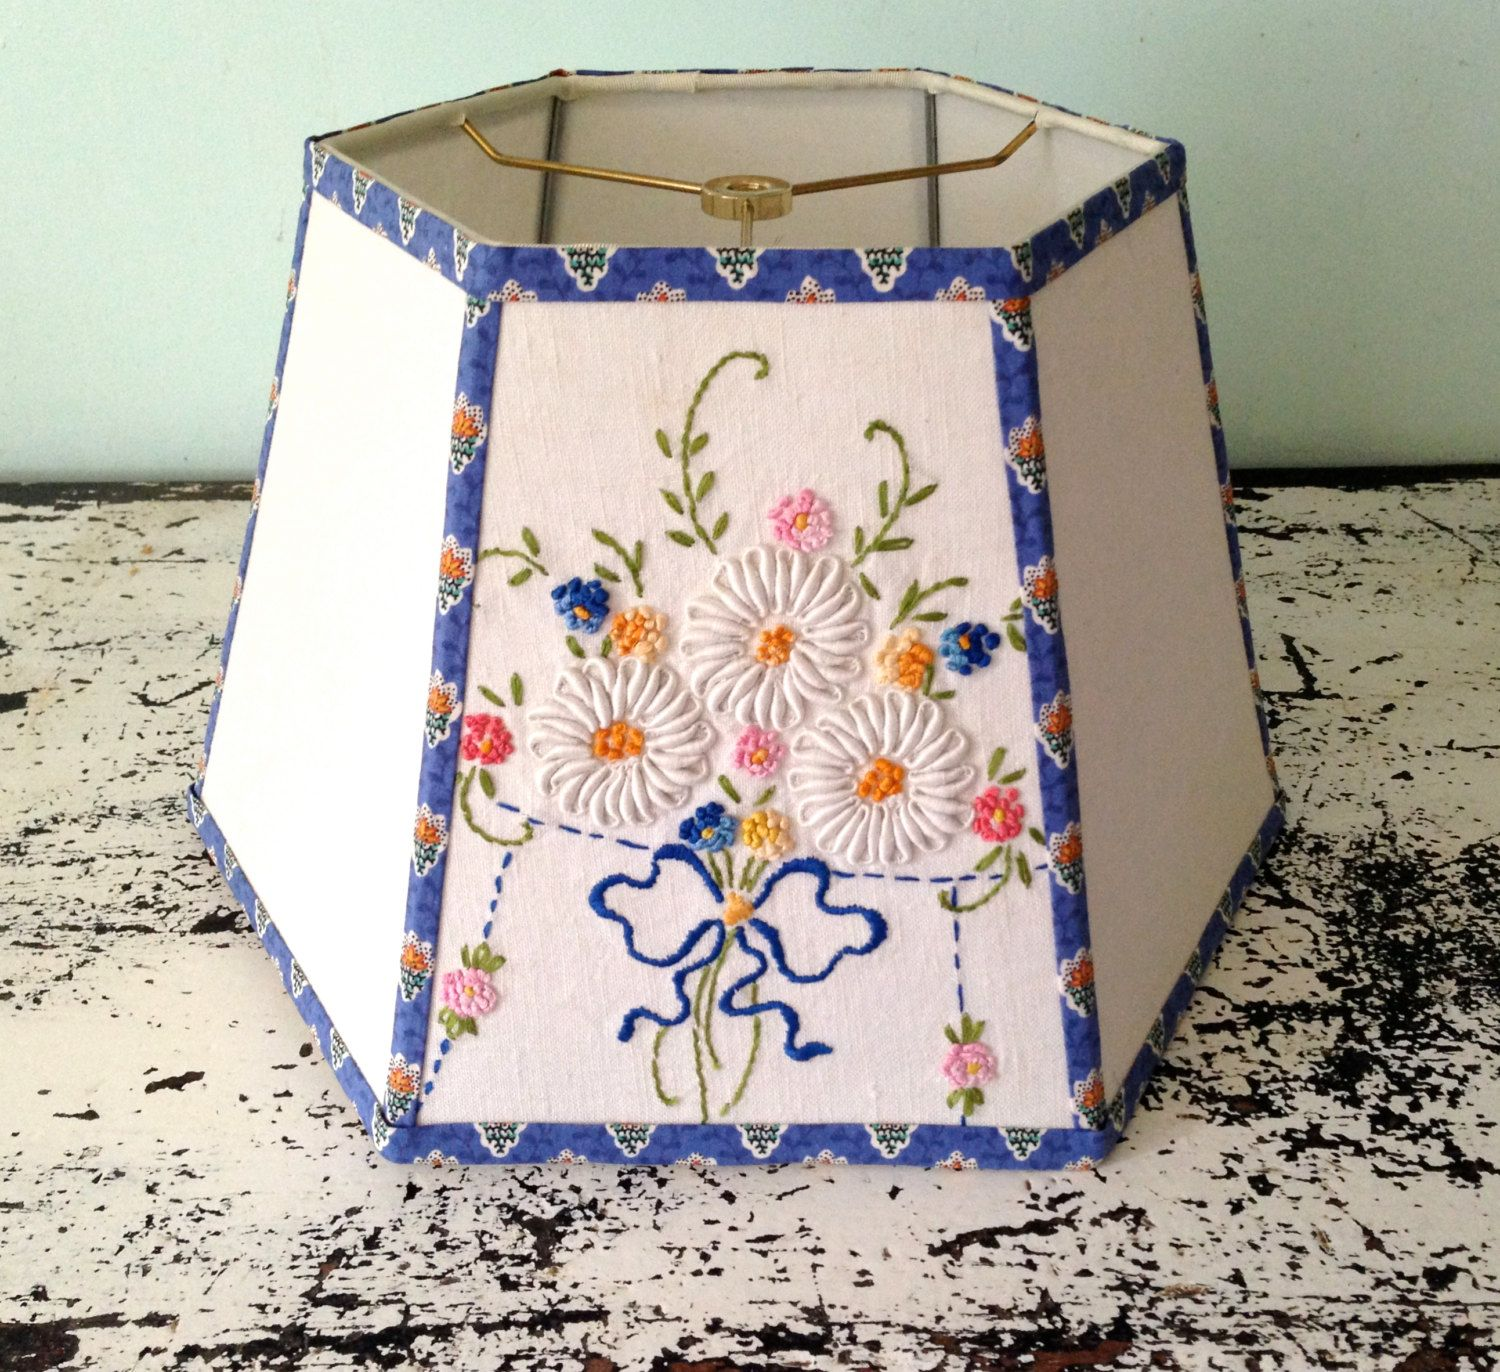 Embroidery flower lamp shade lampshade in blue white green and embroidery flower lamp shade lampshade in blue white green and orange aloadofball Choice Image